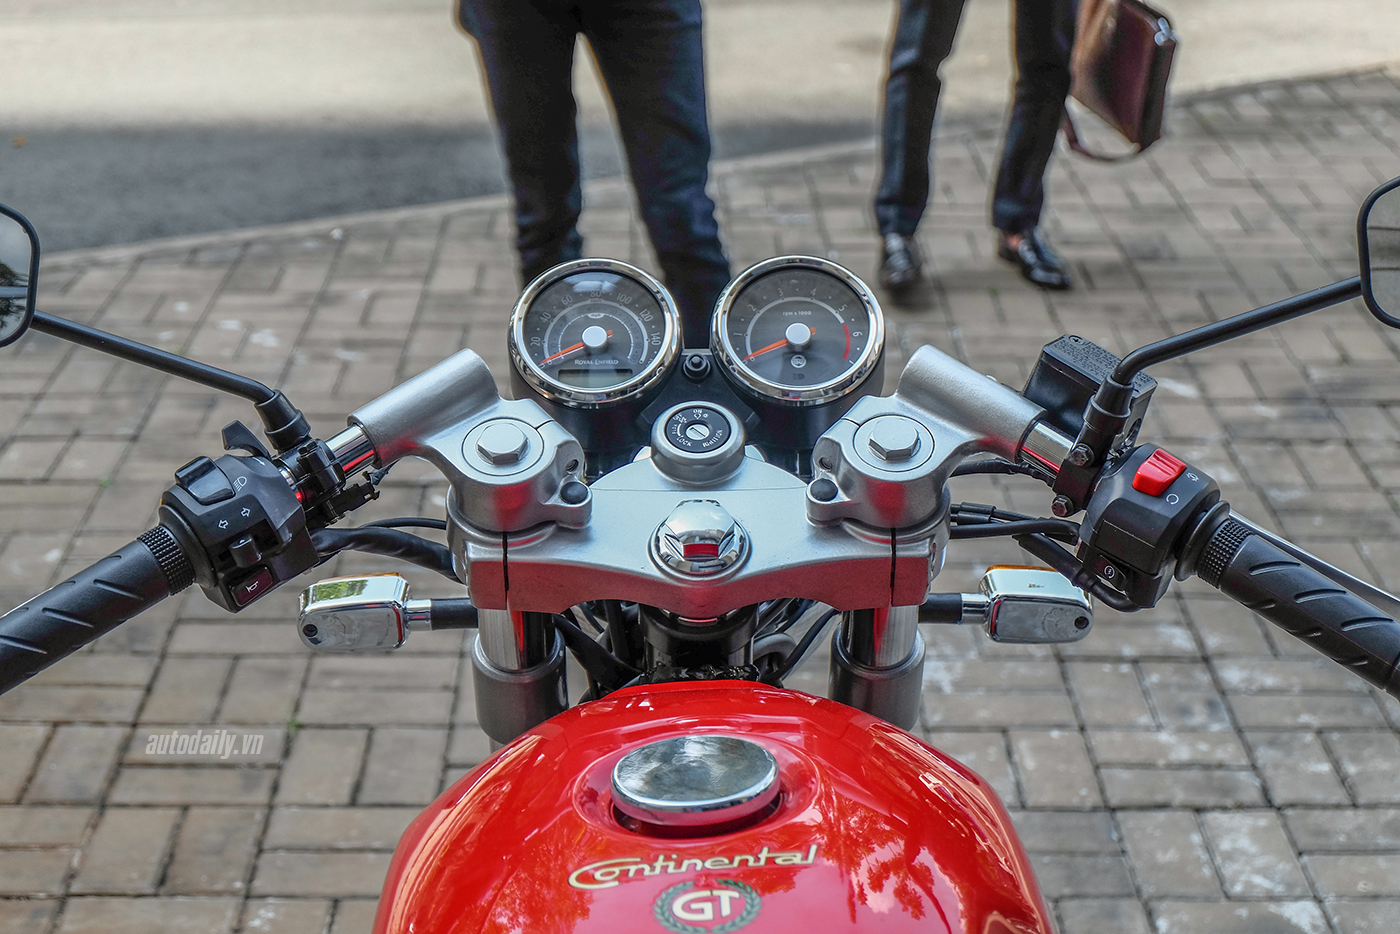 royal-enfield-continental-gt-18.jpg